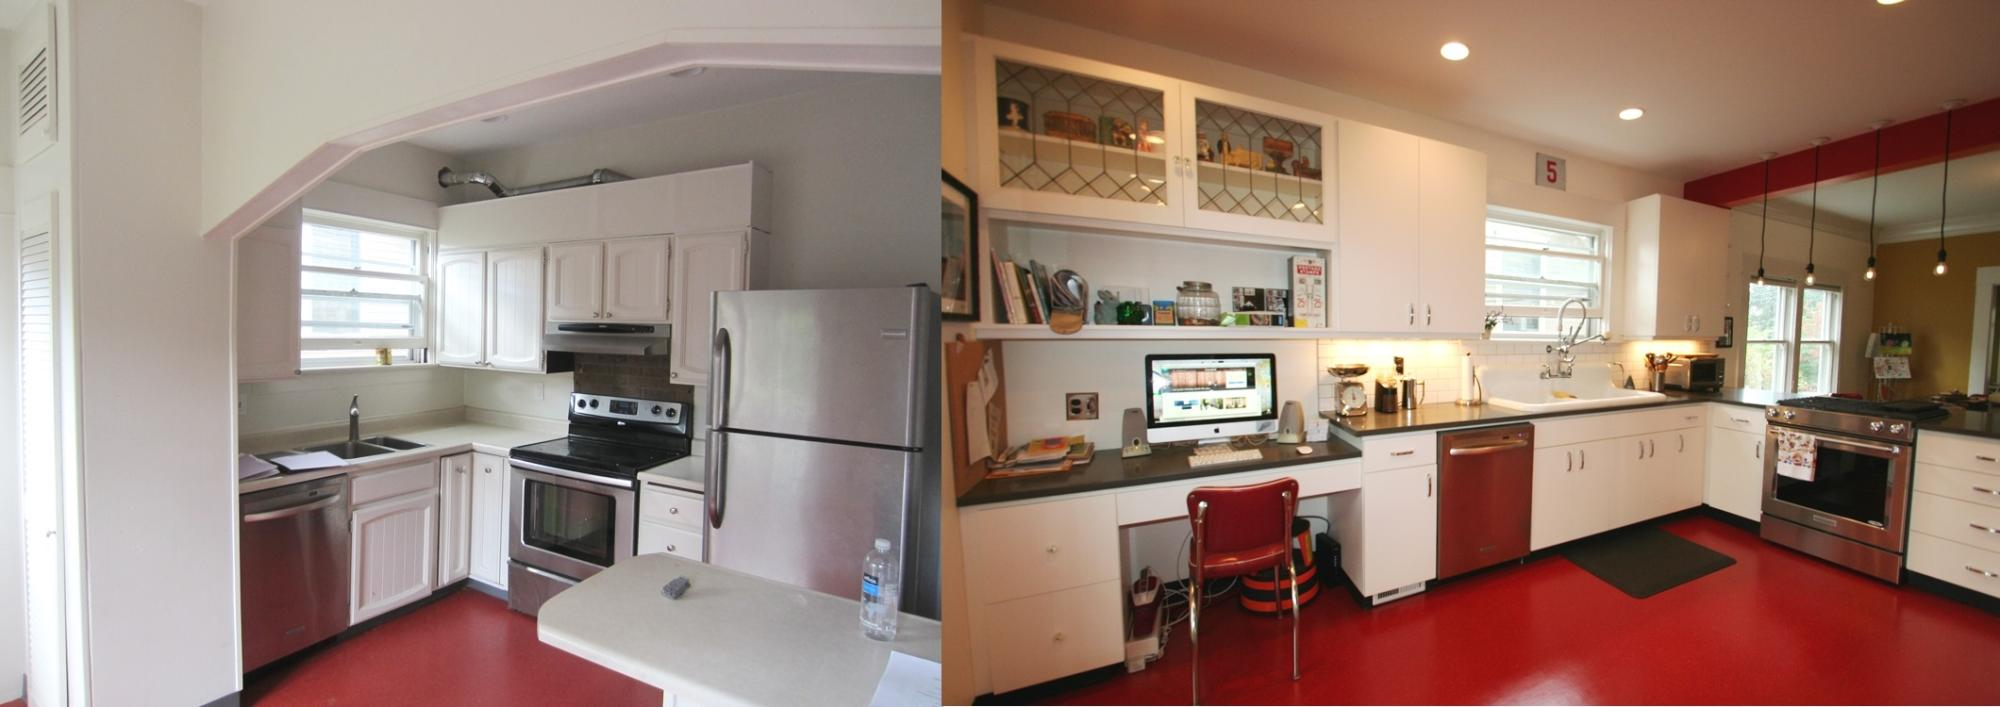 before___after_kitchen_4.jpg